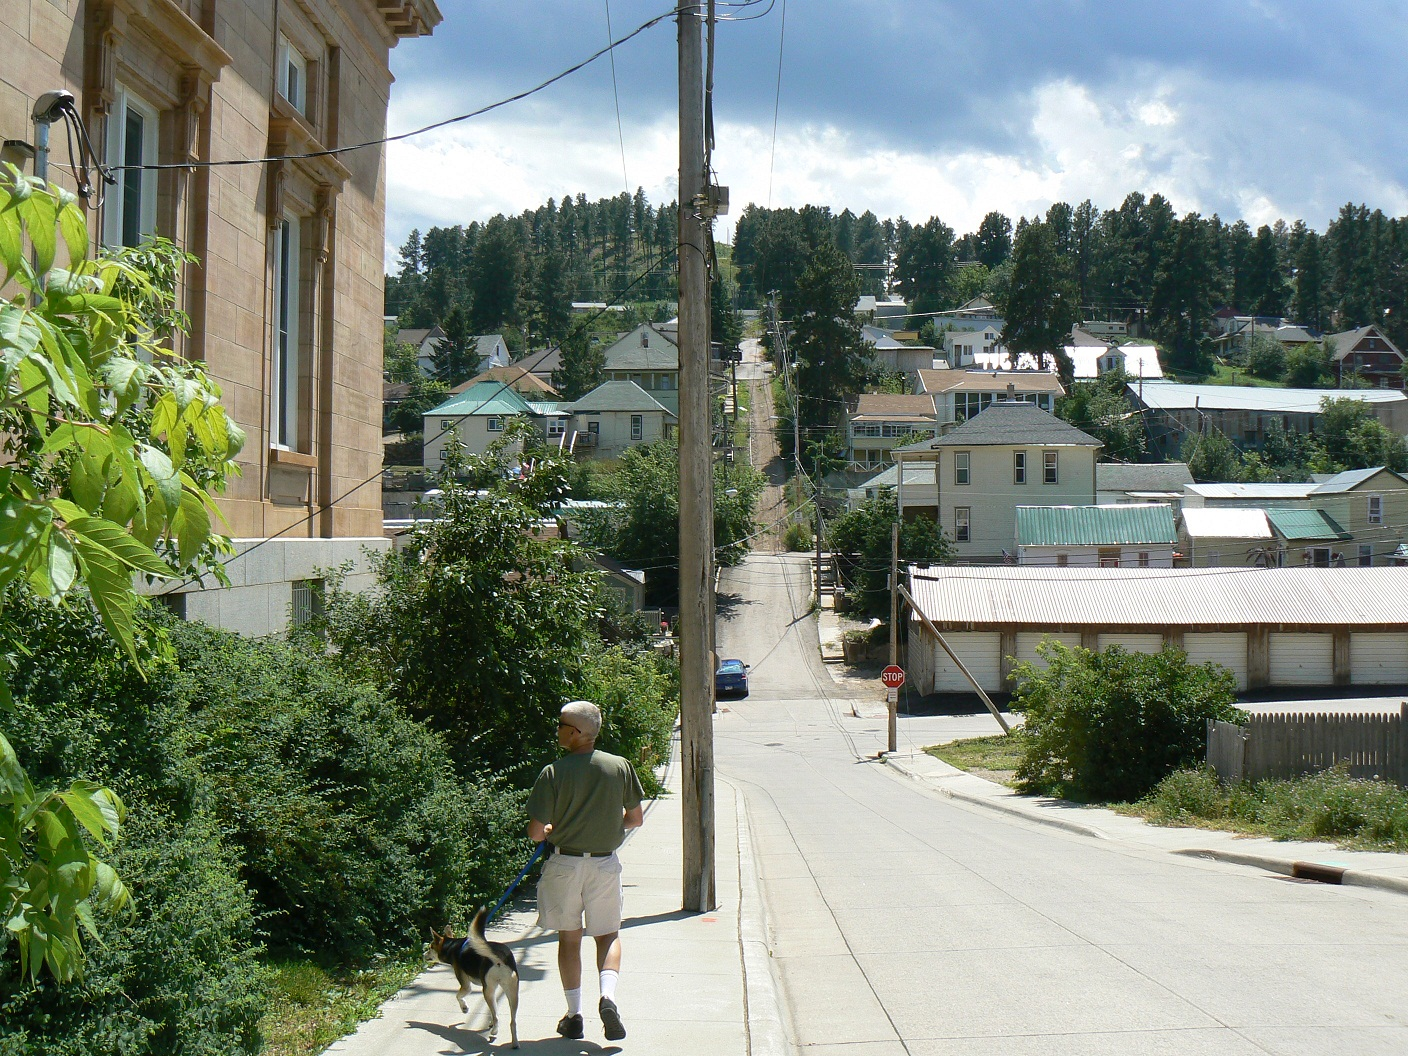 Click image for larger version  Name:Beside Lead Post Office and view of part of my route.jpg Views:46 Size:780.9 KB ID:136885